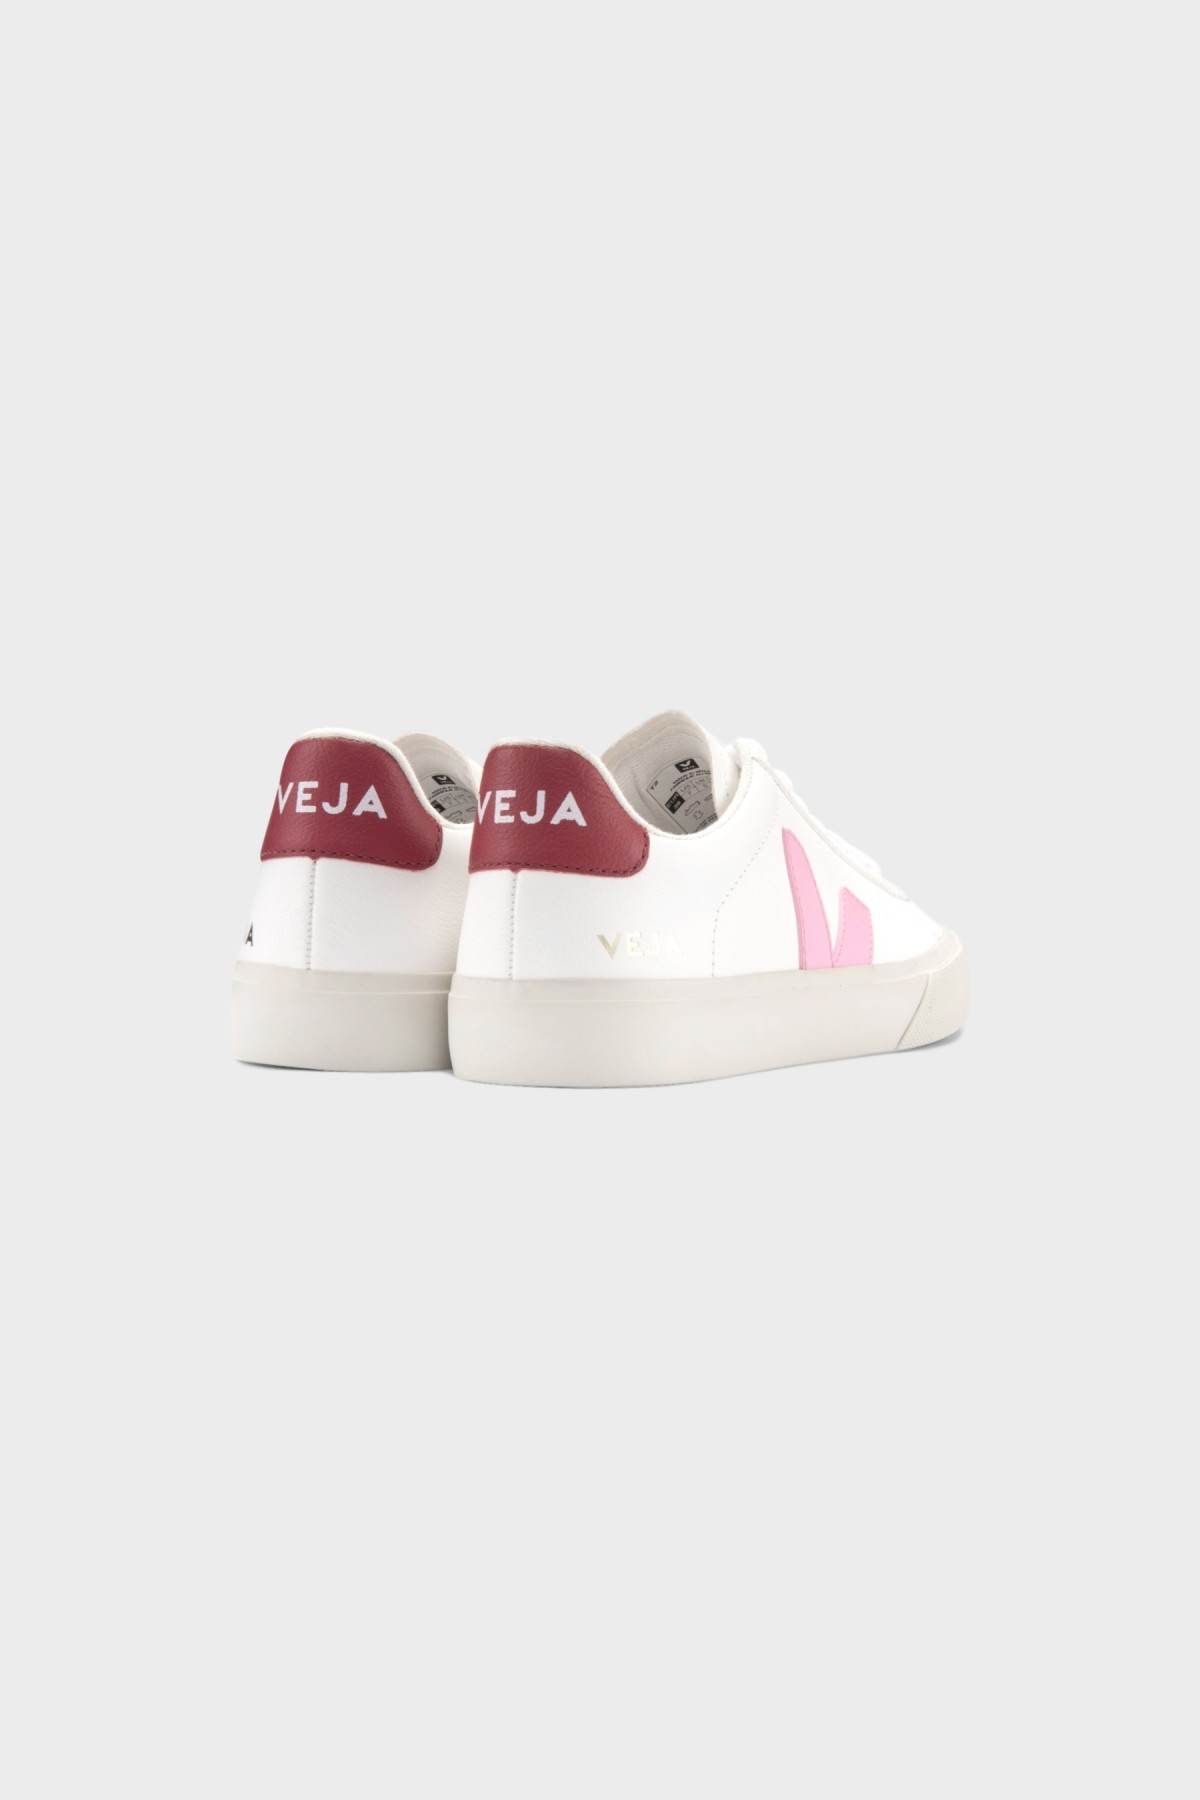 Veja Campo Chromefree Leather in Extra White Guimauve Marsala